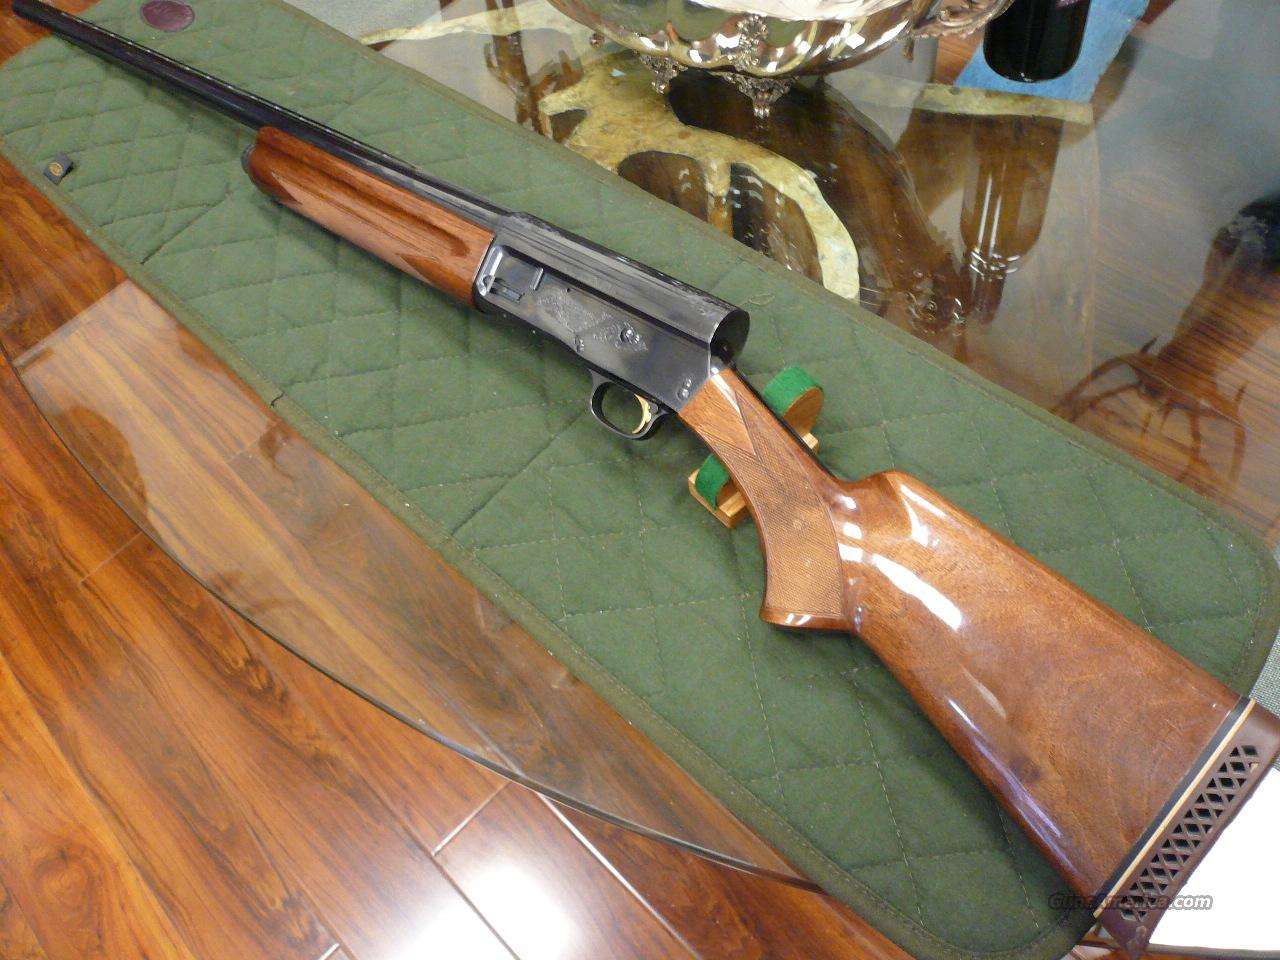 Auto-5 magnum twelve made in Japan-1984  Guns > Shotguns > Browning Shotguns > Autoloaders > Hunting